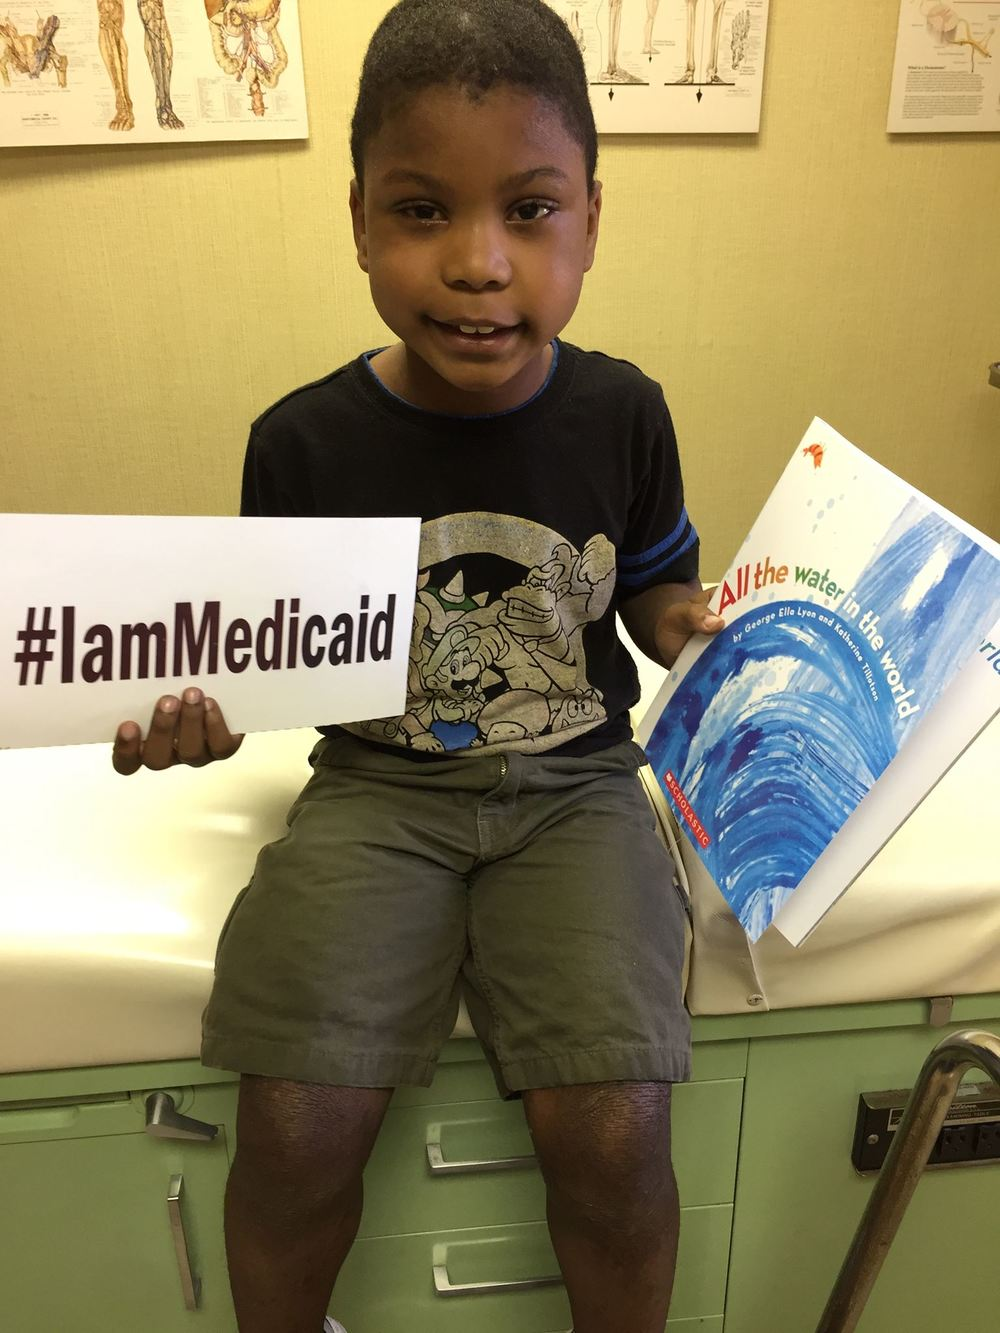 I have All Kids Insurance now but use to have Medicaid. Thanks Medicaid for helping me with severe atopic dermatitis.  #‎IamMedicaid